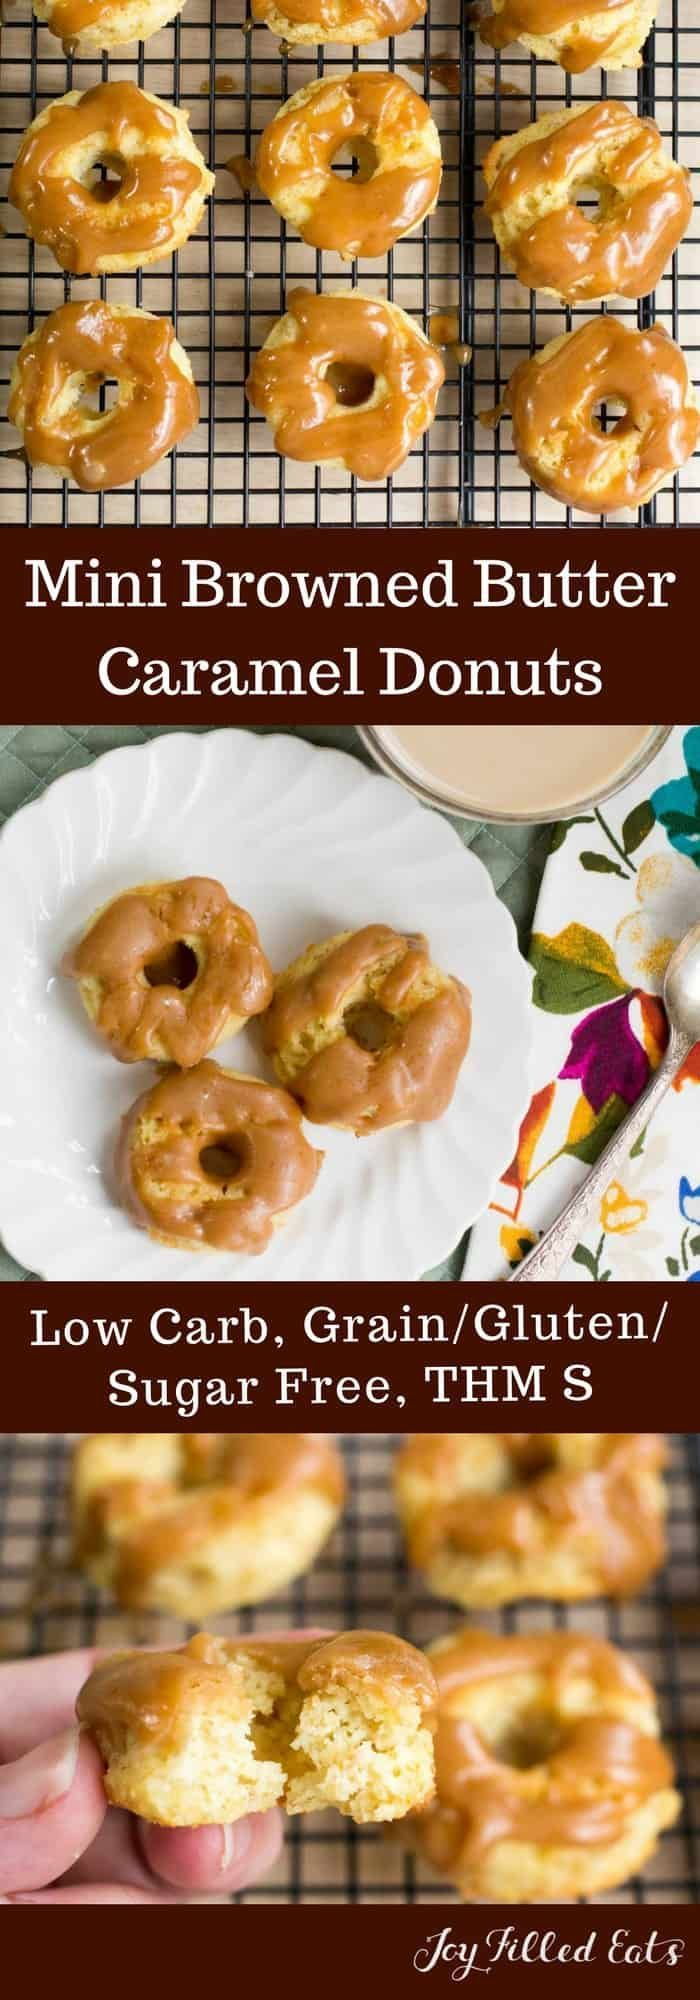 Browned Butter Caramel Donuts - Low Carb, Grain/Gluten/Sugar Free, THM S - These are the perfect addition to your Easter brunch. The donuts are light and moist and the browned butter caramel topping is rich and sweet with a hint of salt.